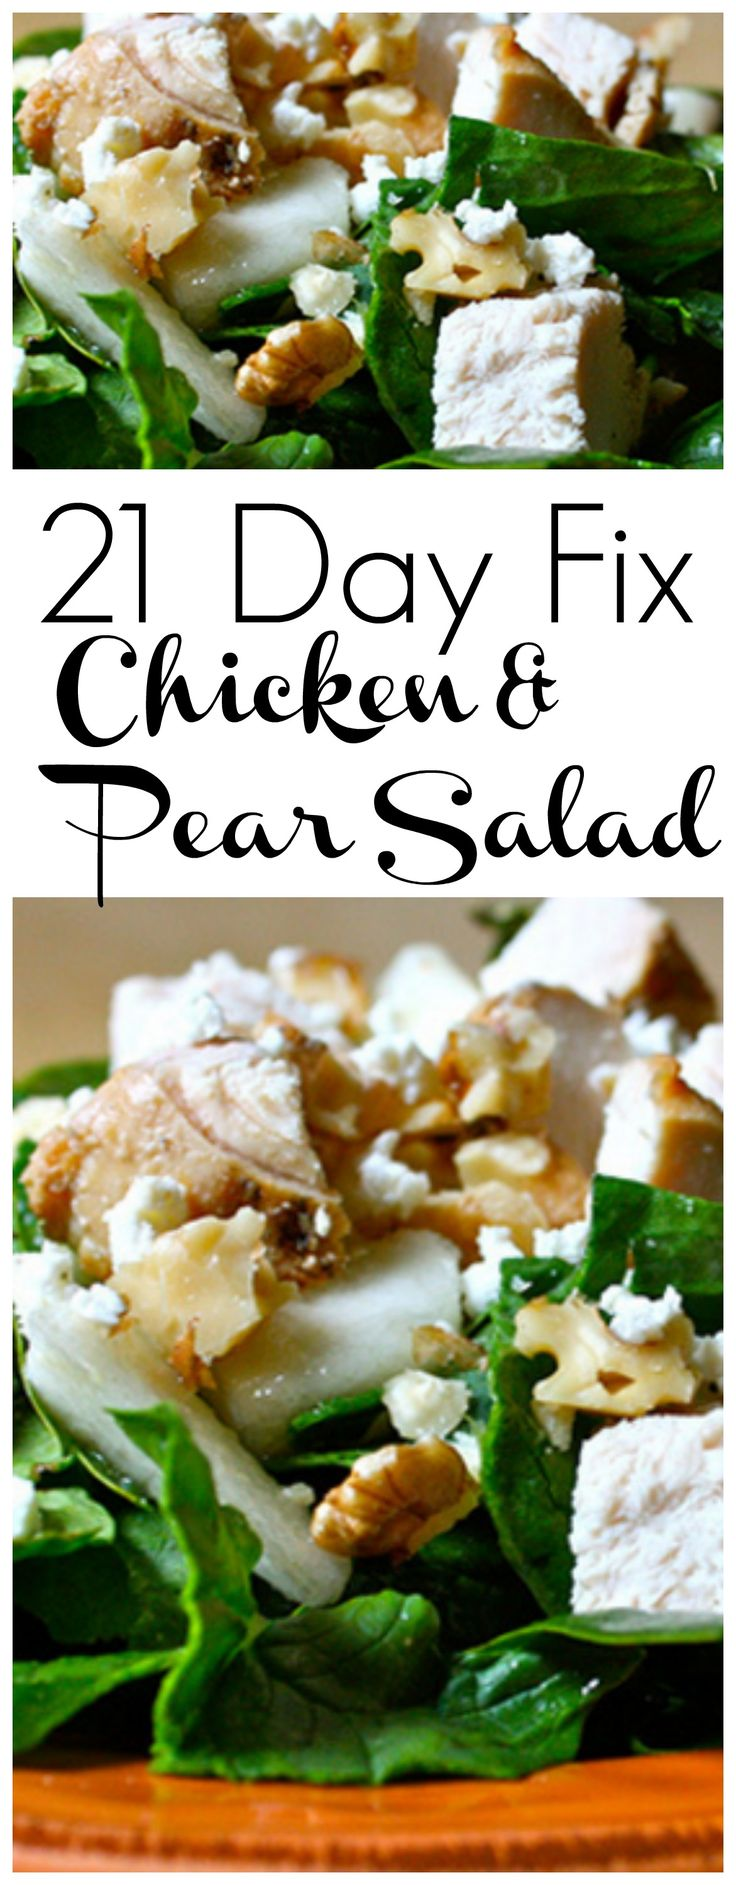 21 Day Fix Chicken and Pear Salad #21dfx #21dayfix #21dayfixsalad…